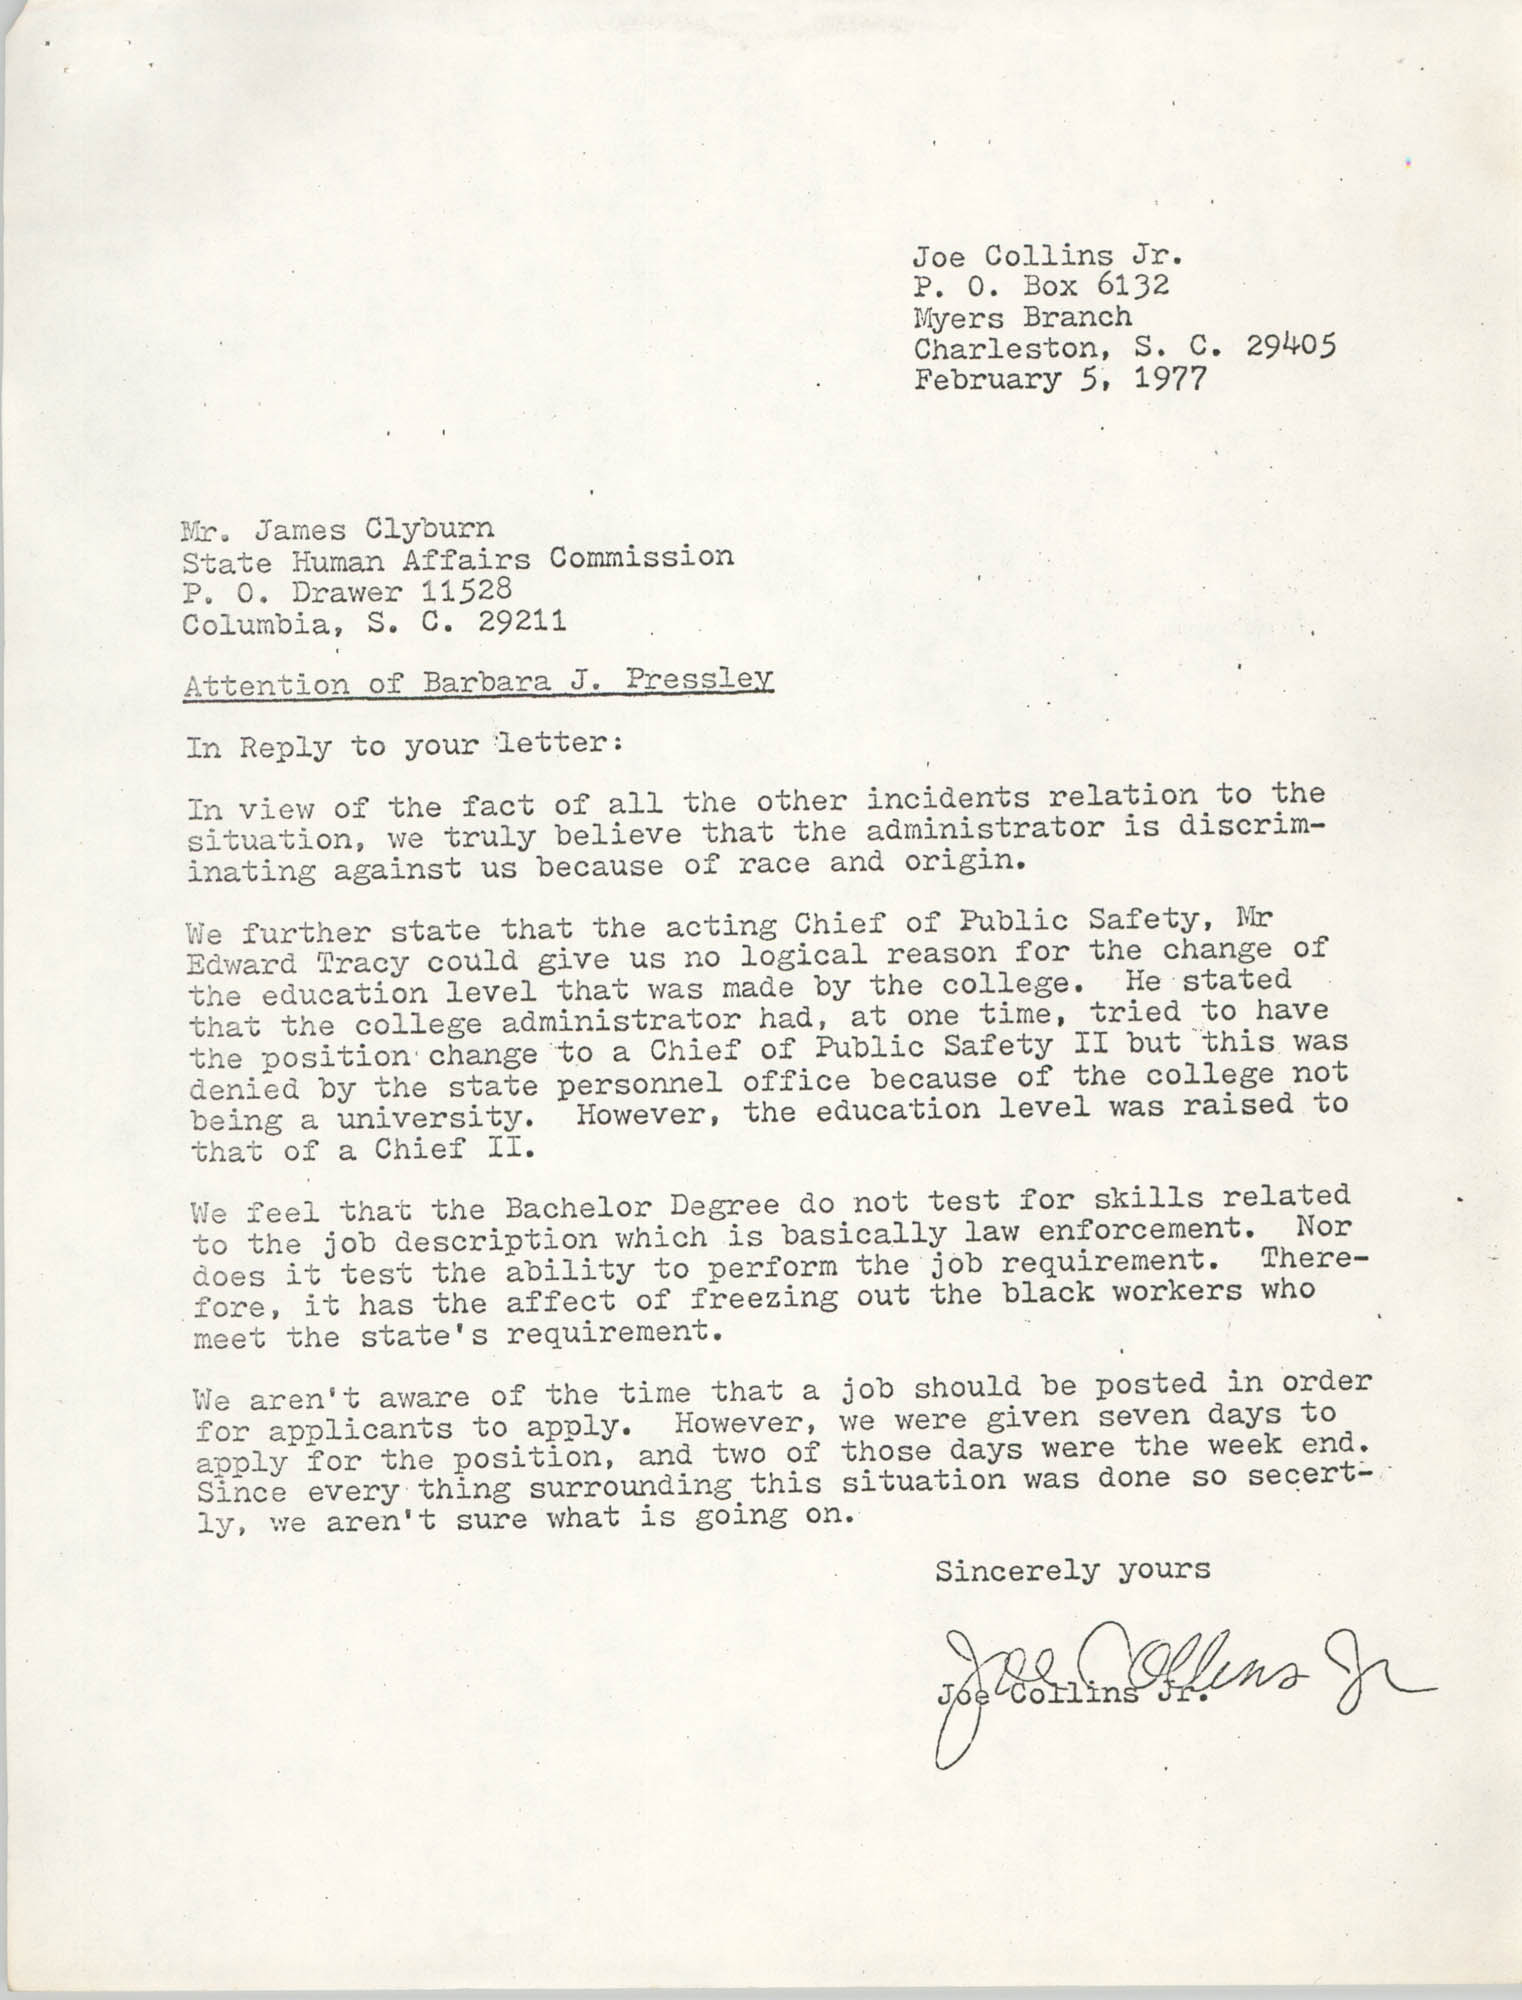 Letter from Joe Collins, Jr. to James Clyburn, February 5, 1977